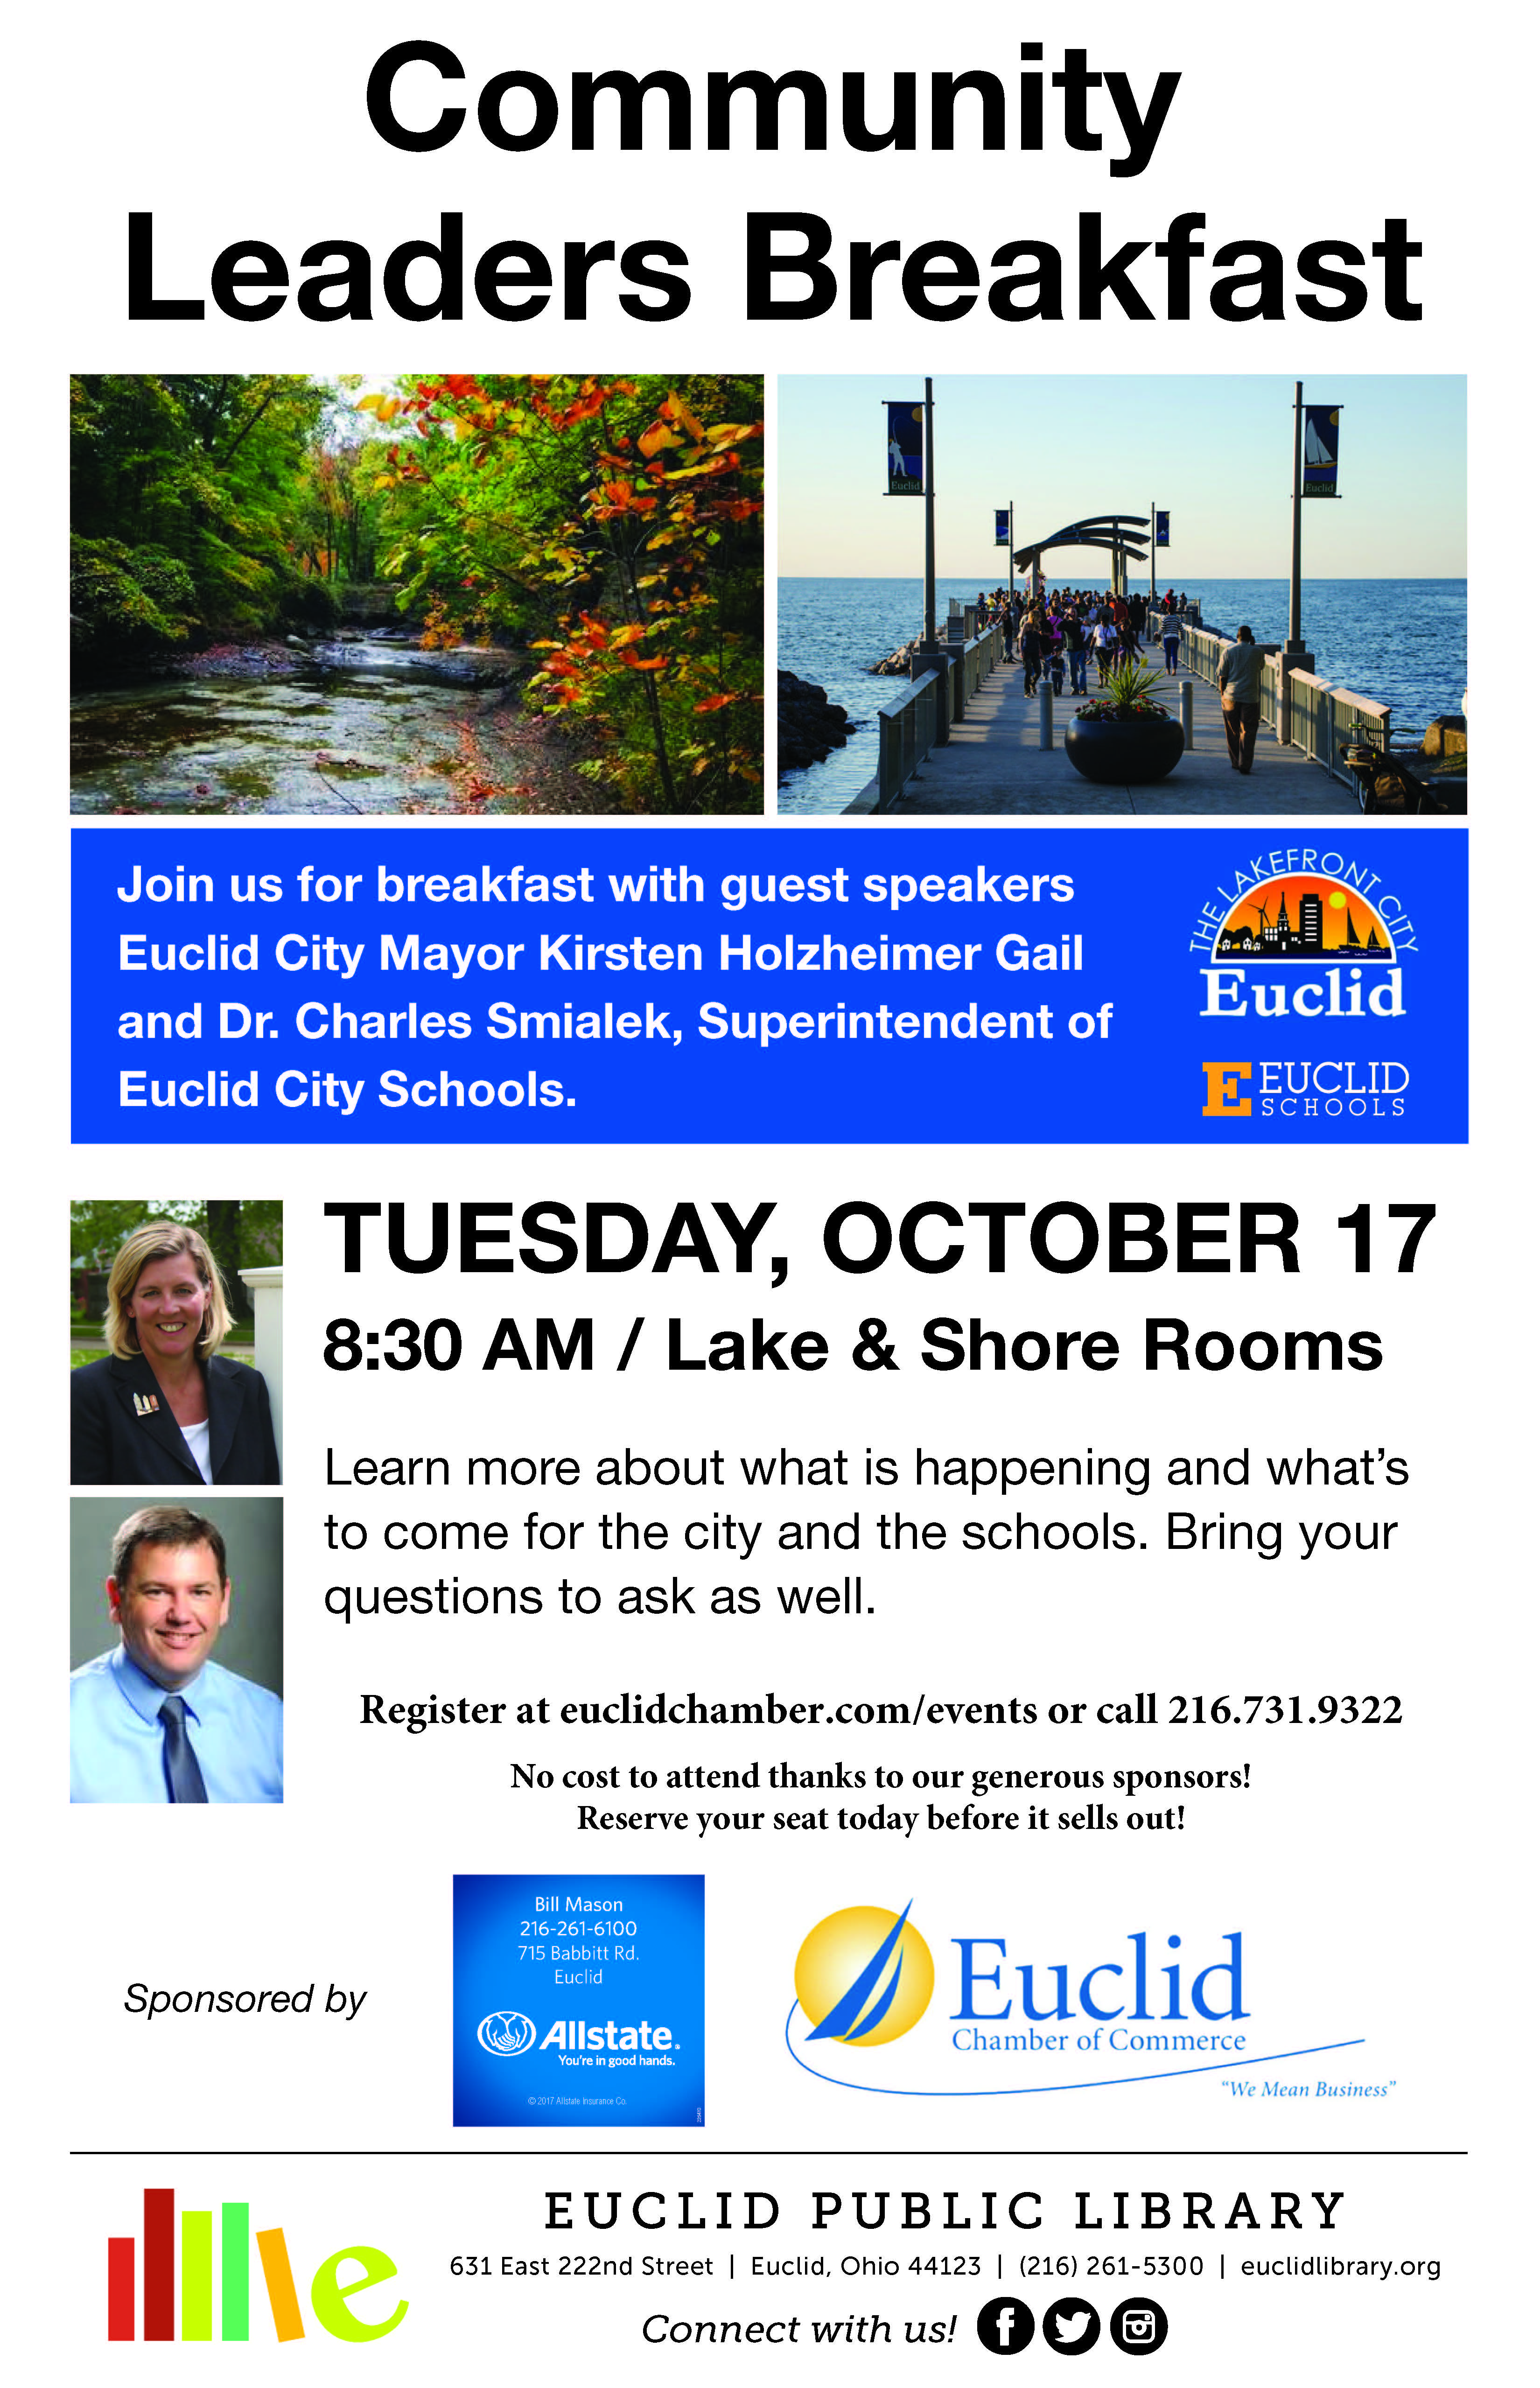 Euclid Chamber of Commerce community leaders breakfast flyer